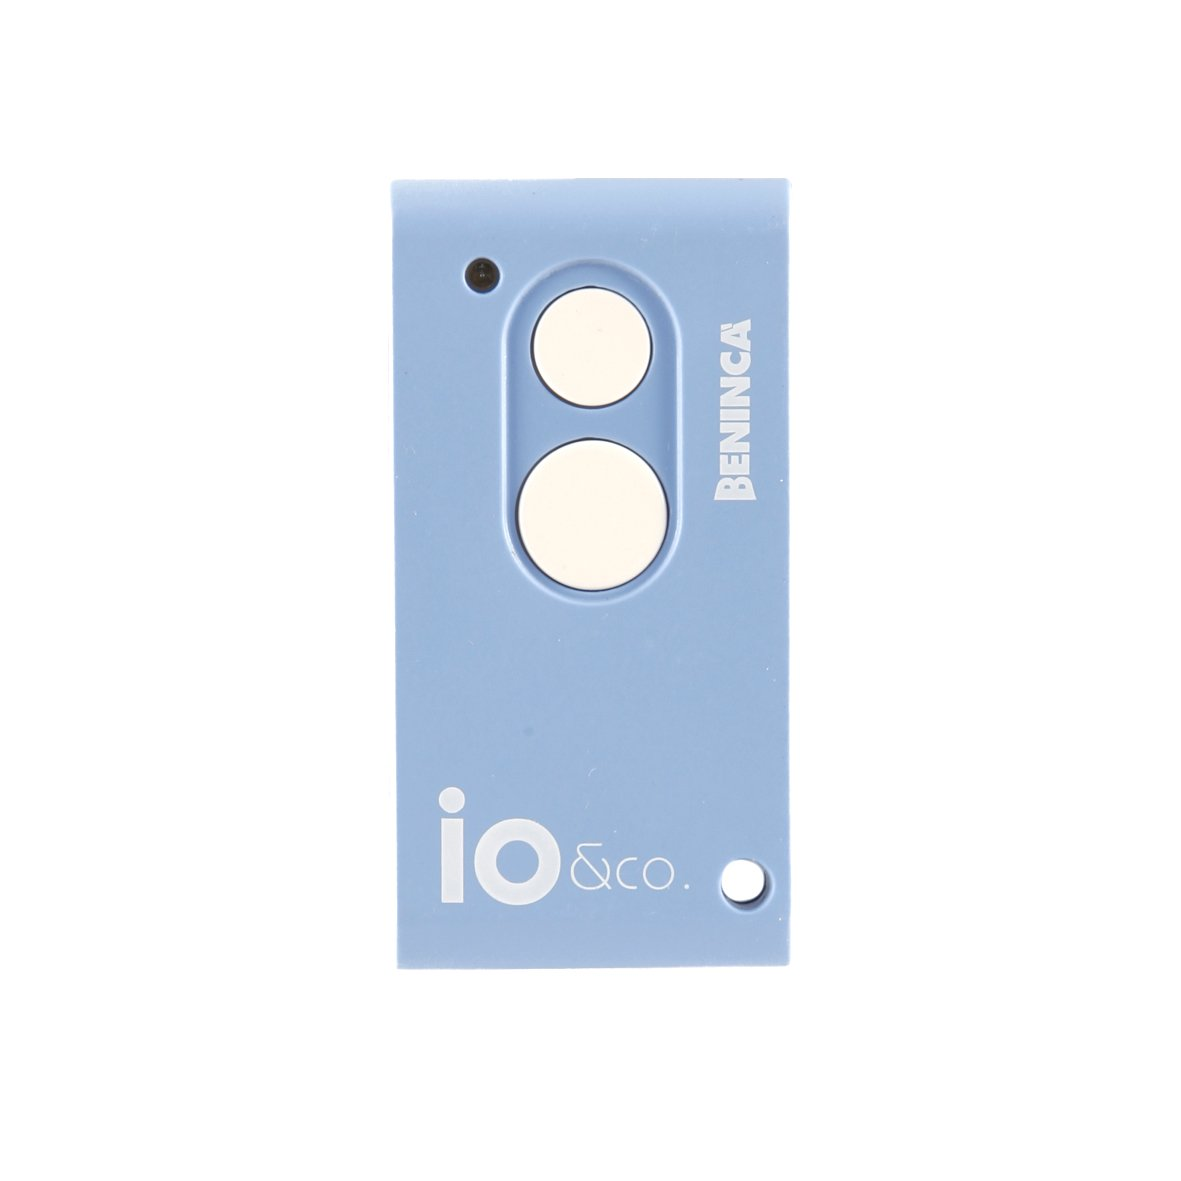 BENINCA IO BLUE Gate Remote